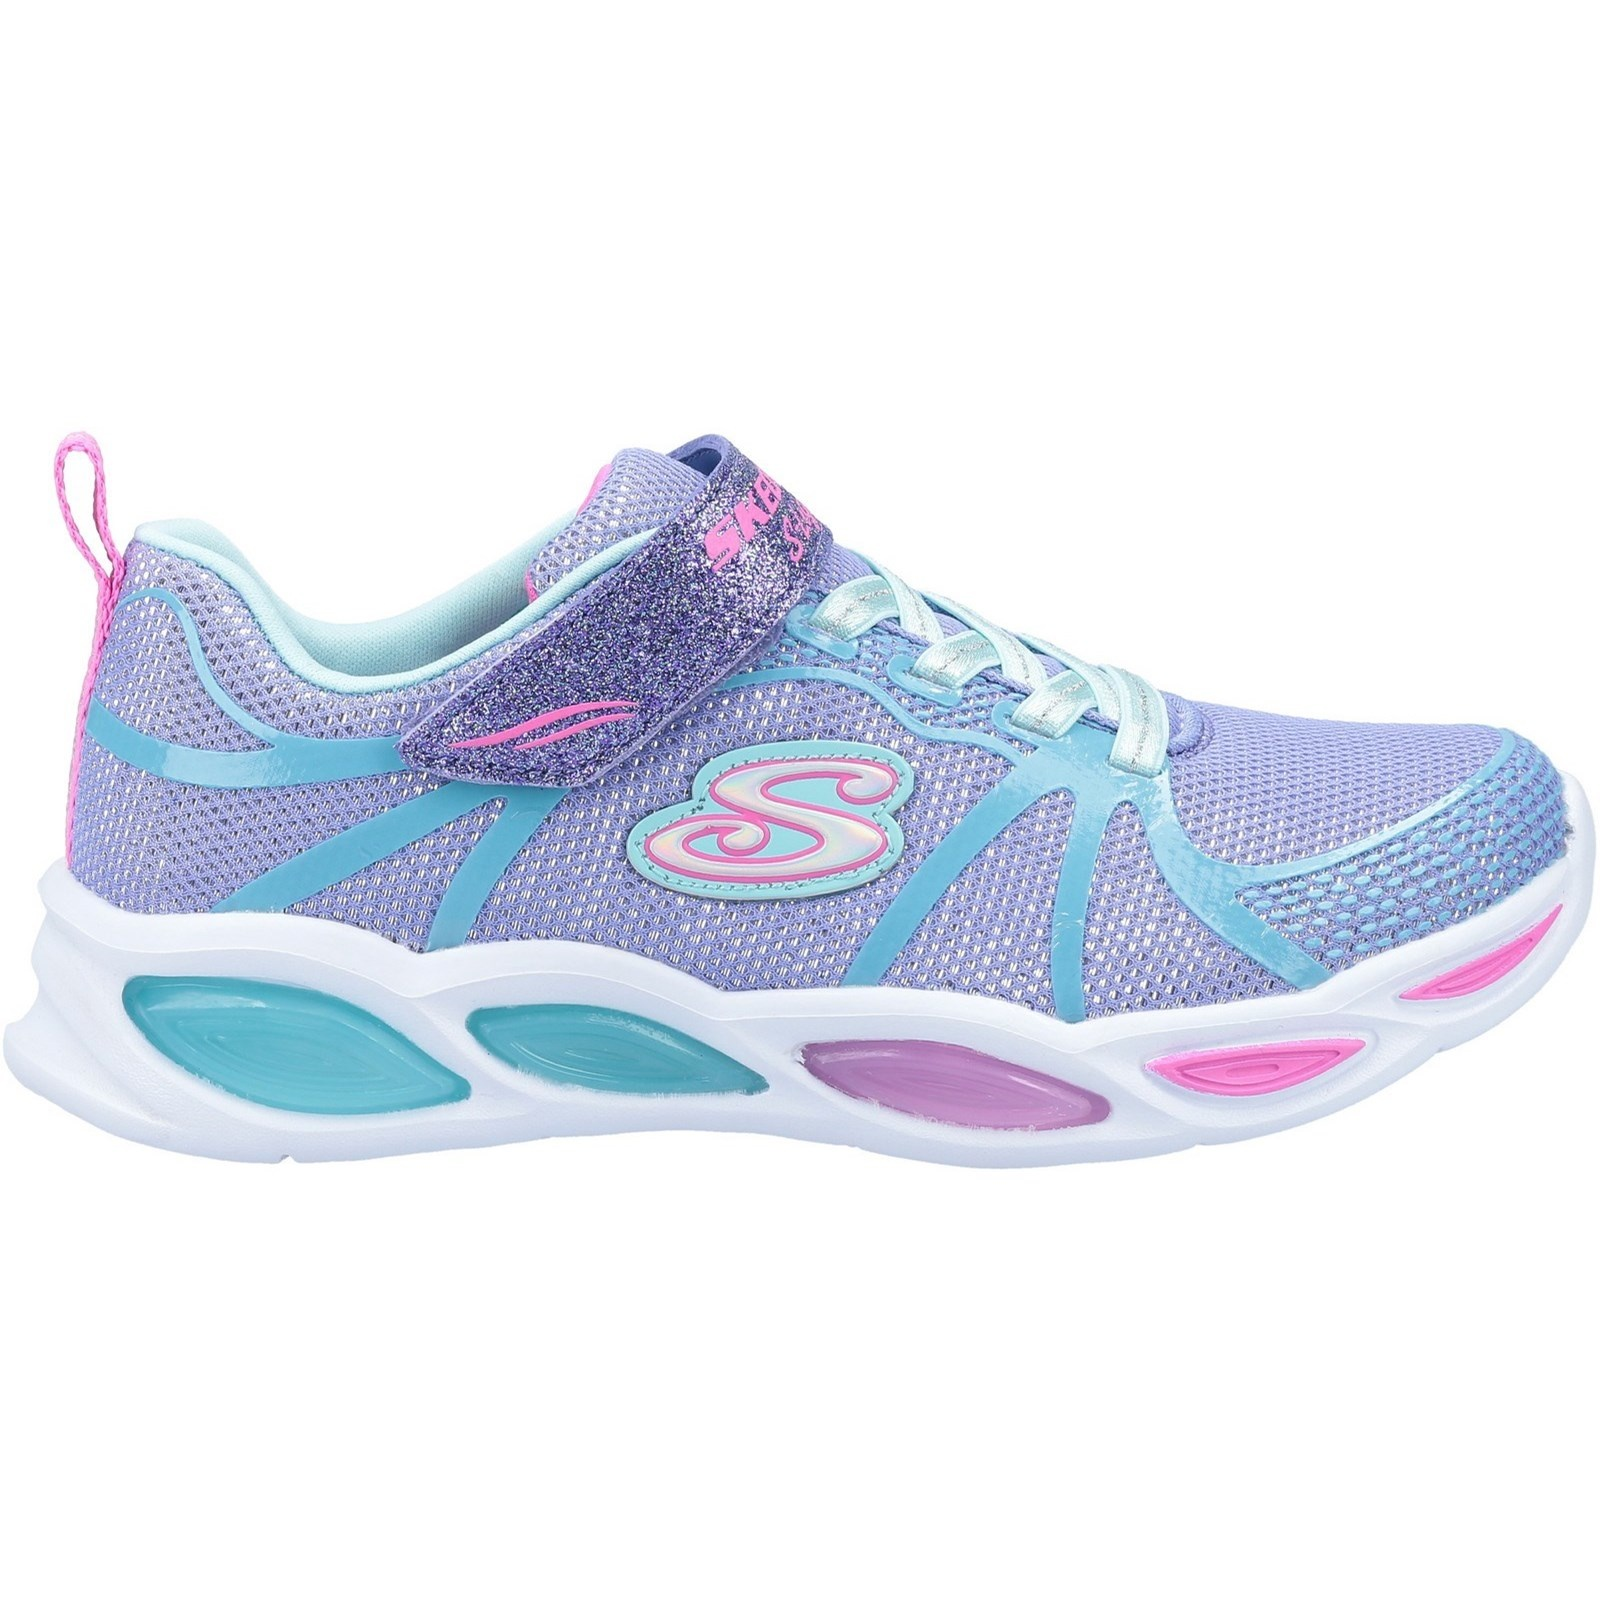 Skechers Shimmer Beams Periwinkle